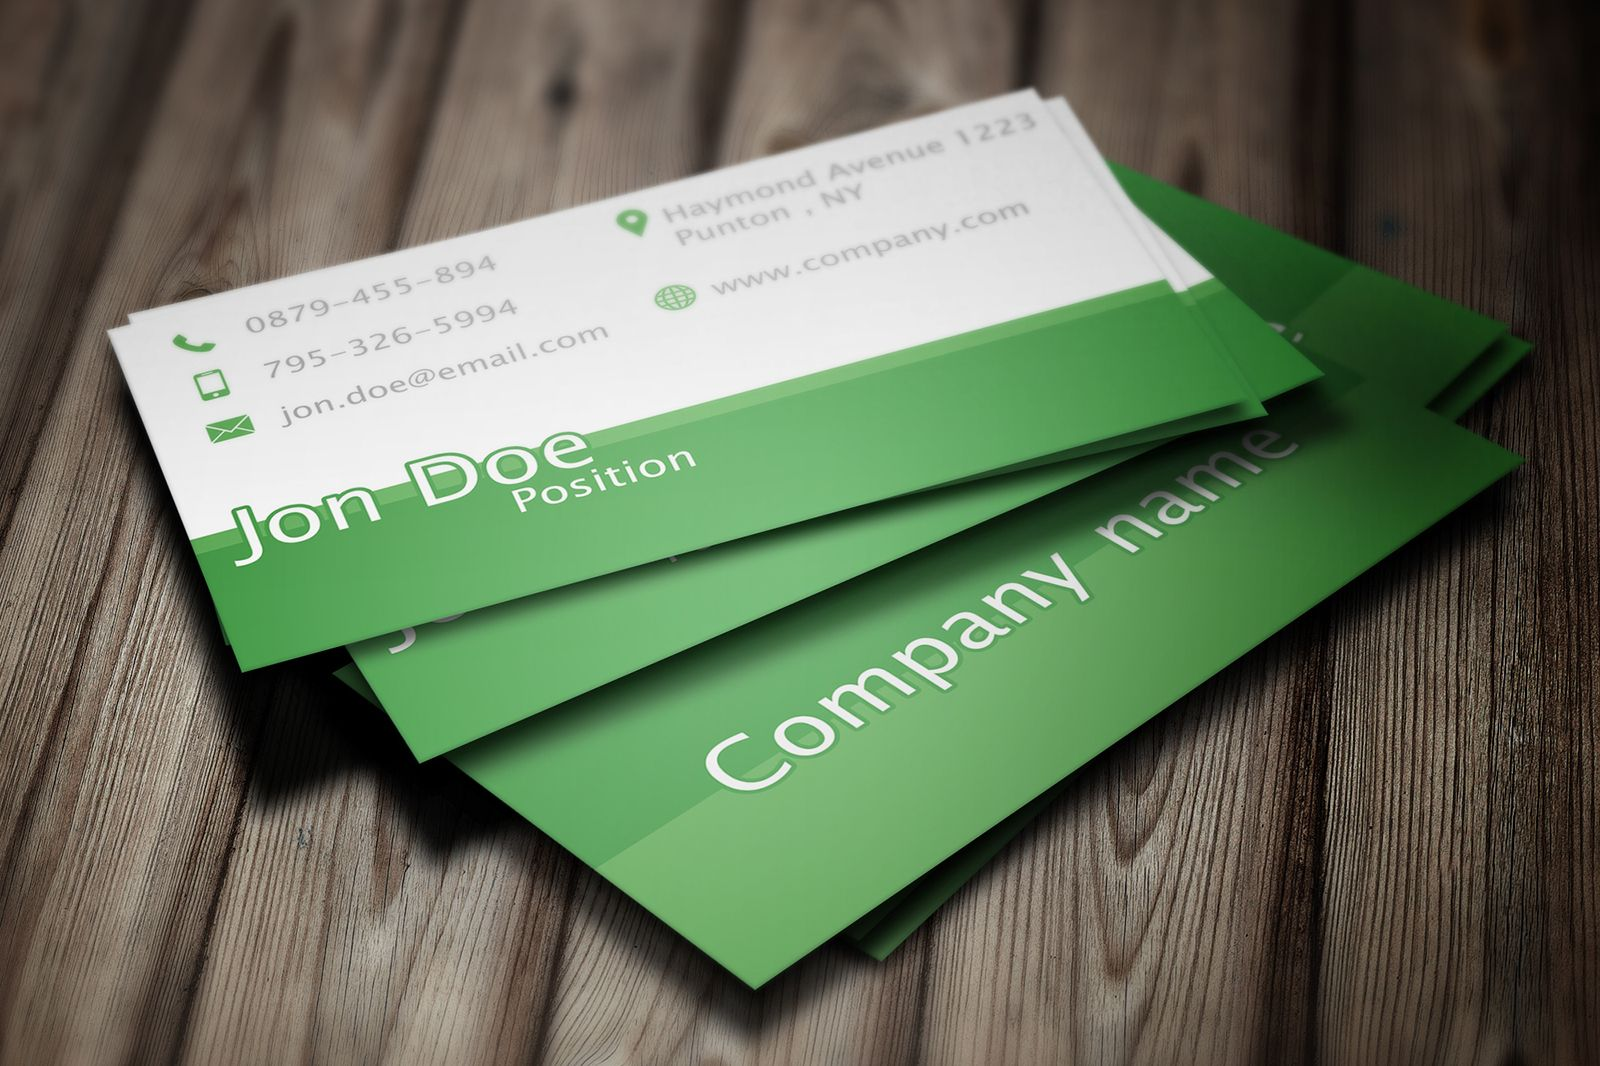 Modern textile textured black and green business card template. This ...